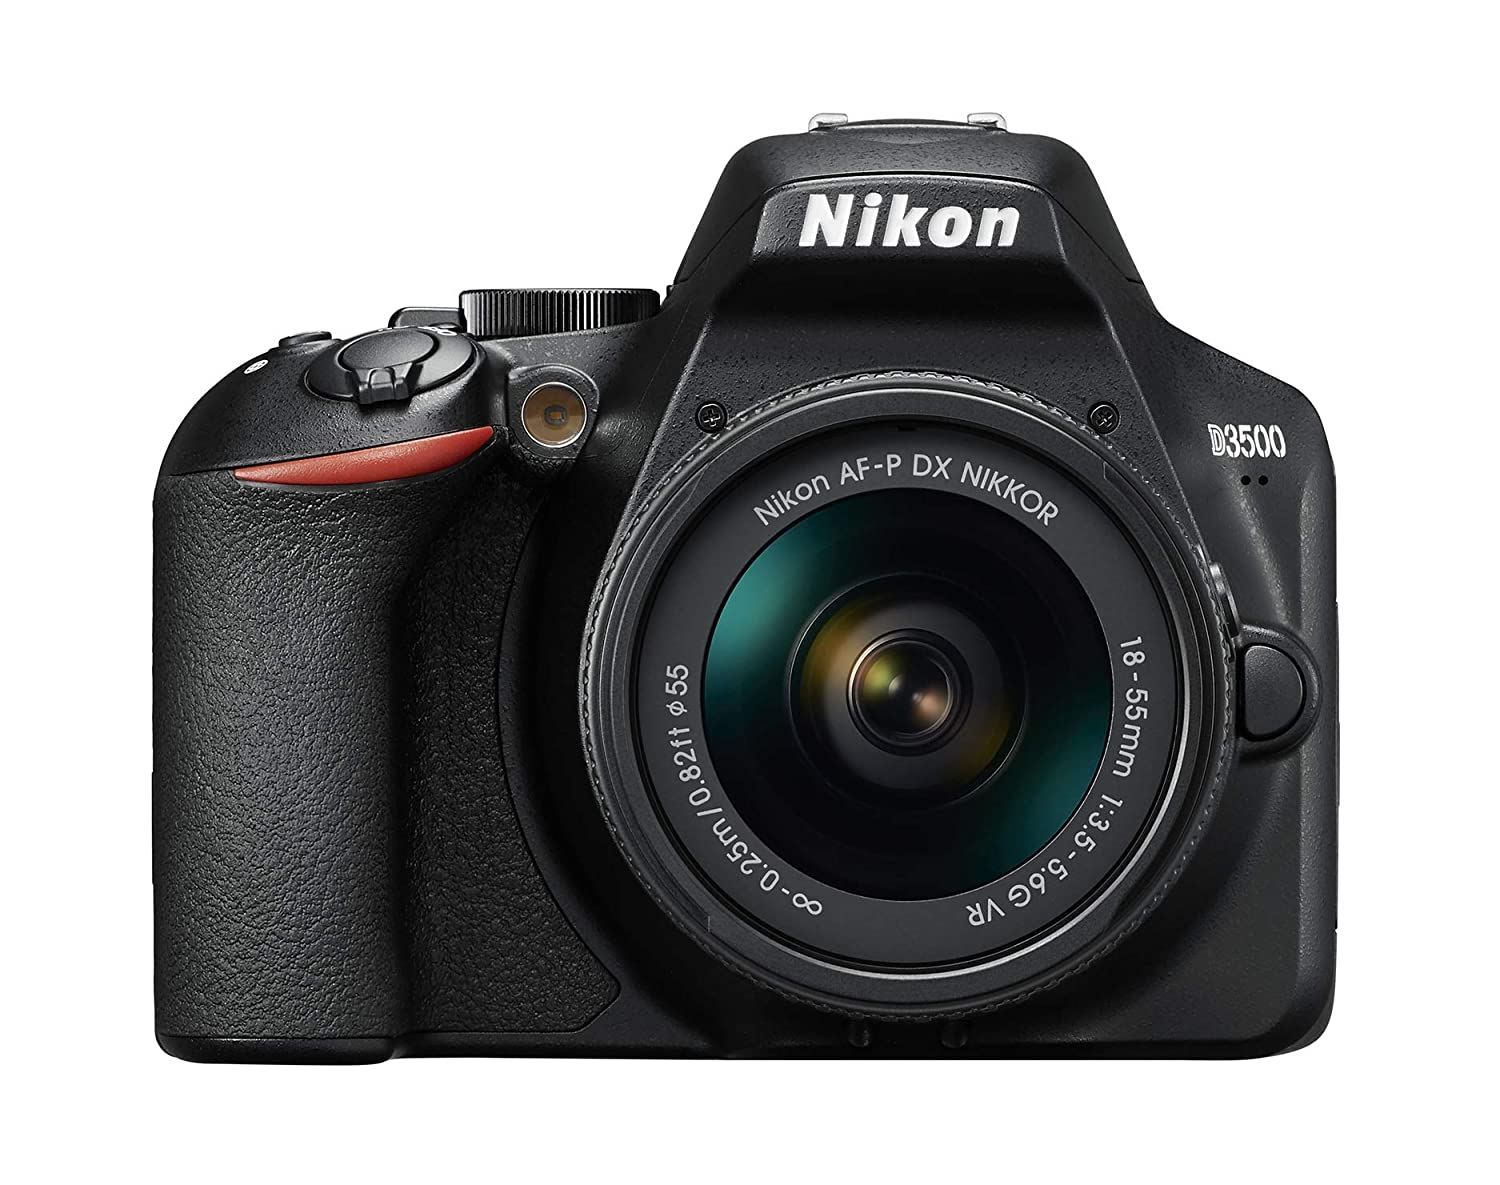 Nikon D3500 W/AF-P DX Nikkor 18-55mm f/3.5-5.6G VR with 16GB